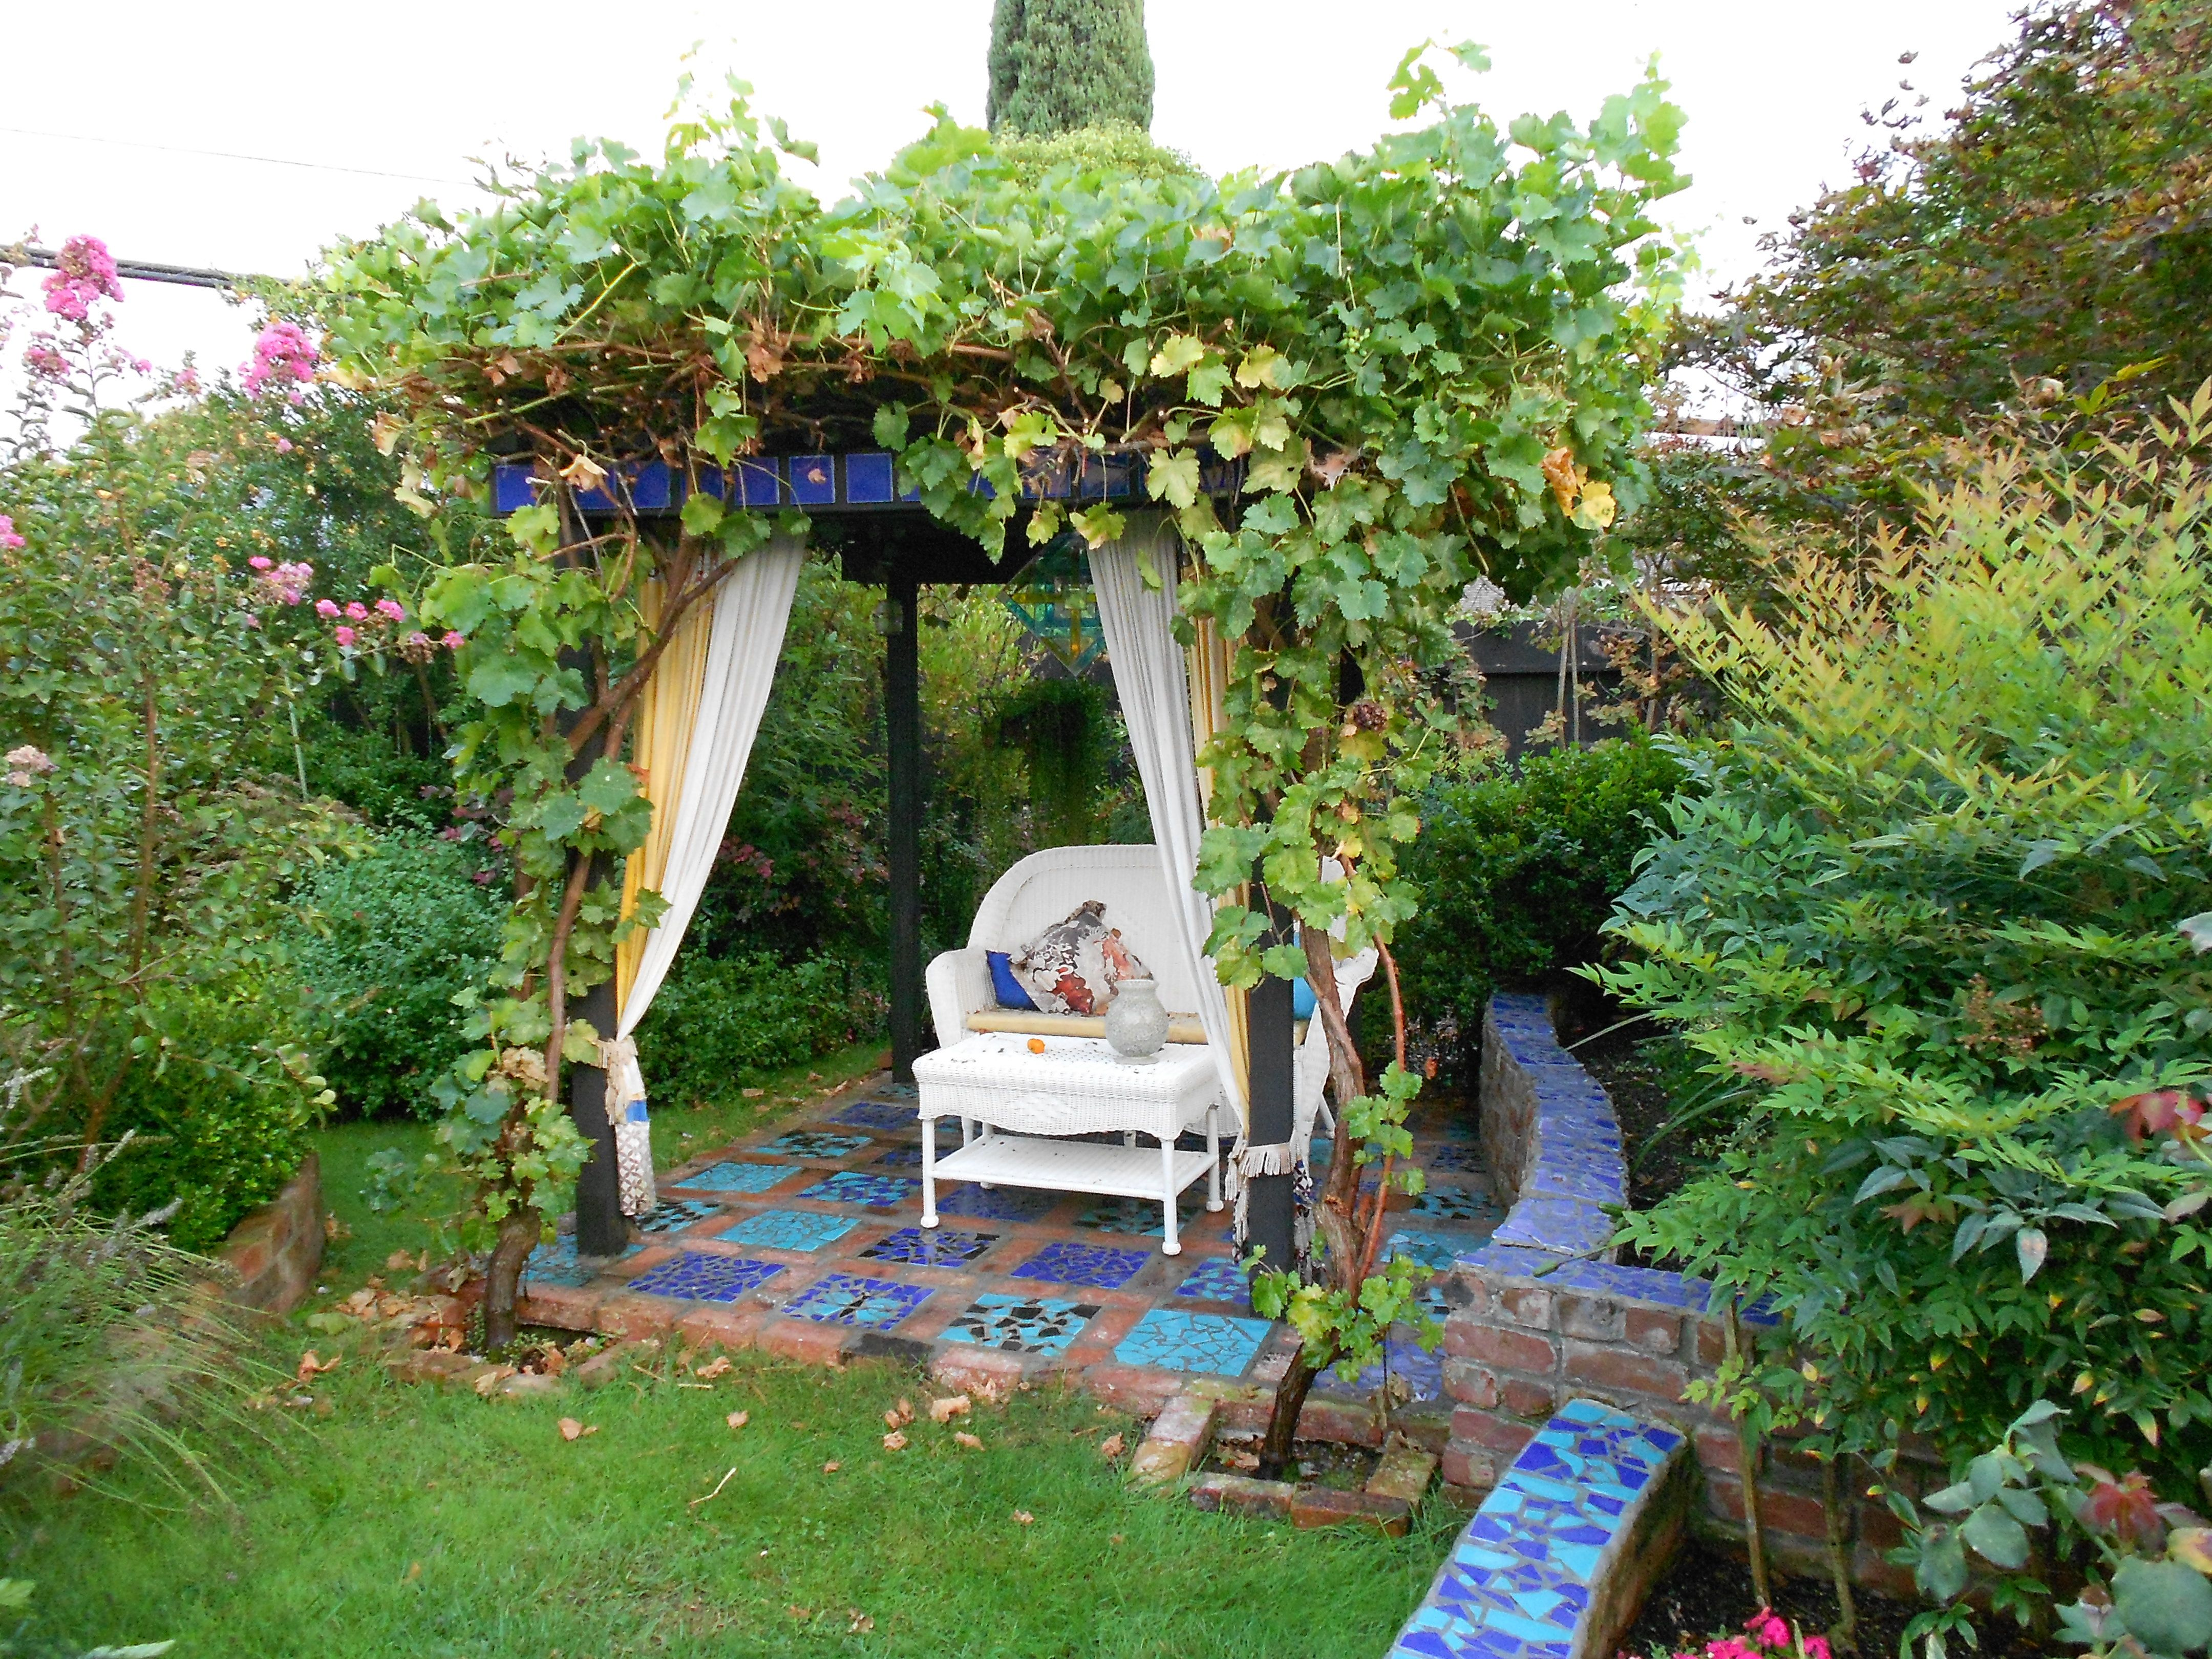 Built the pergola and covered it with grape vines the patio the patio underneith is the same broken tile design the pergola cost 80 to build so inexpensive if you do it yourself solutioingenieria Images